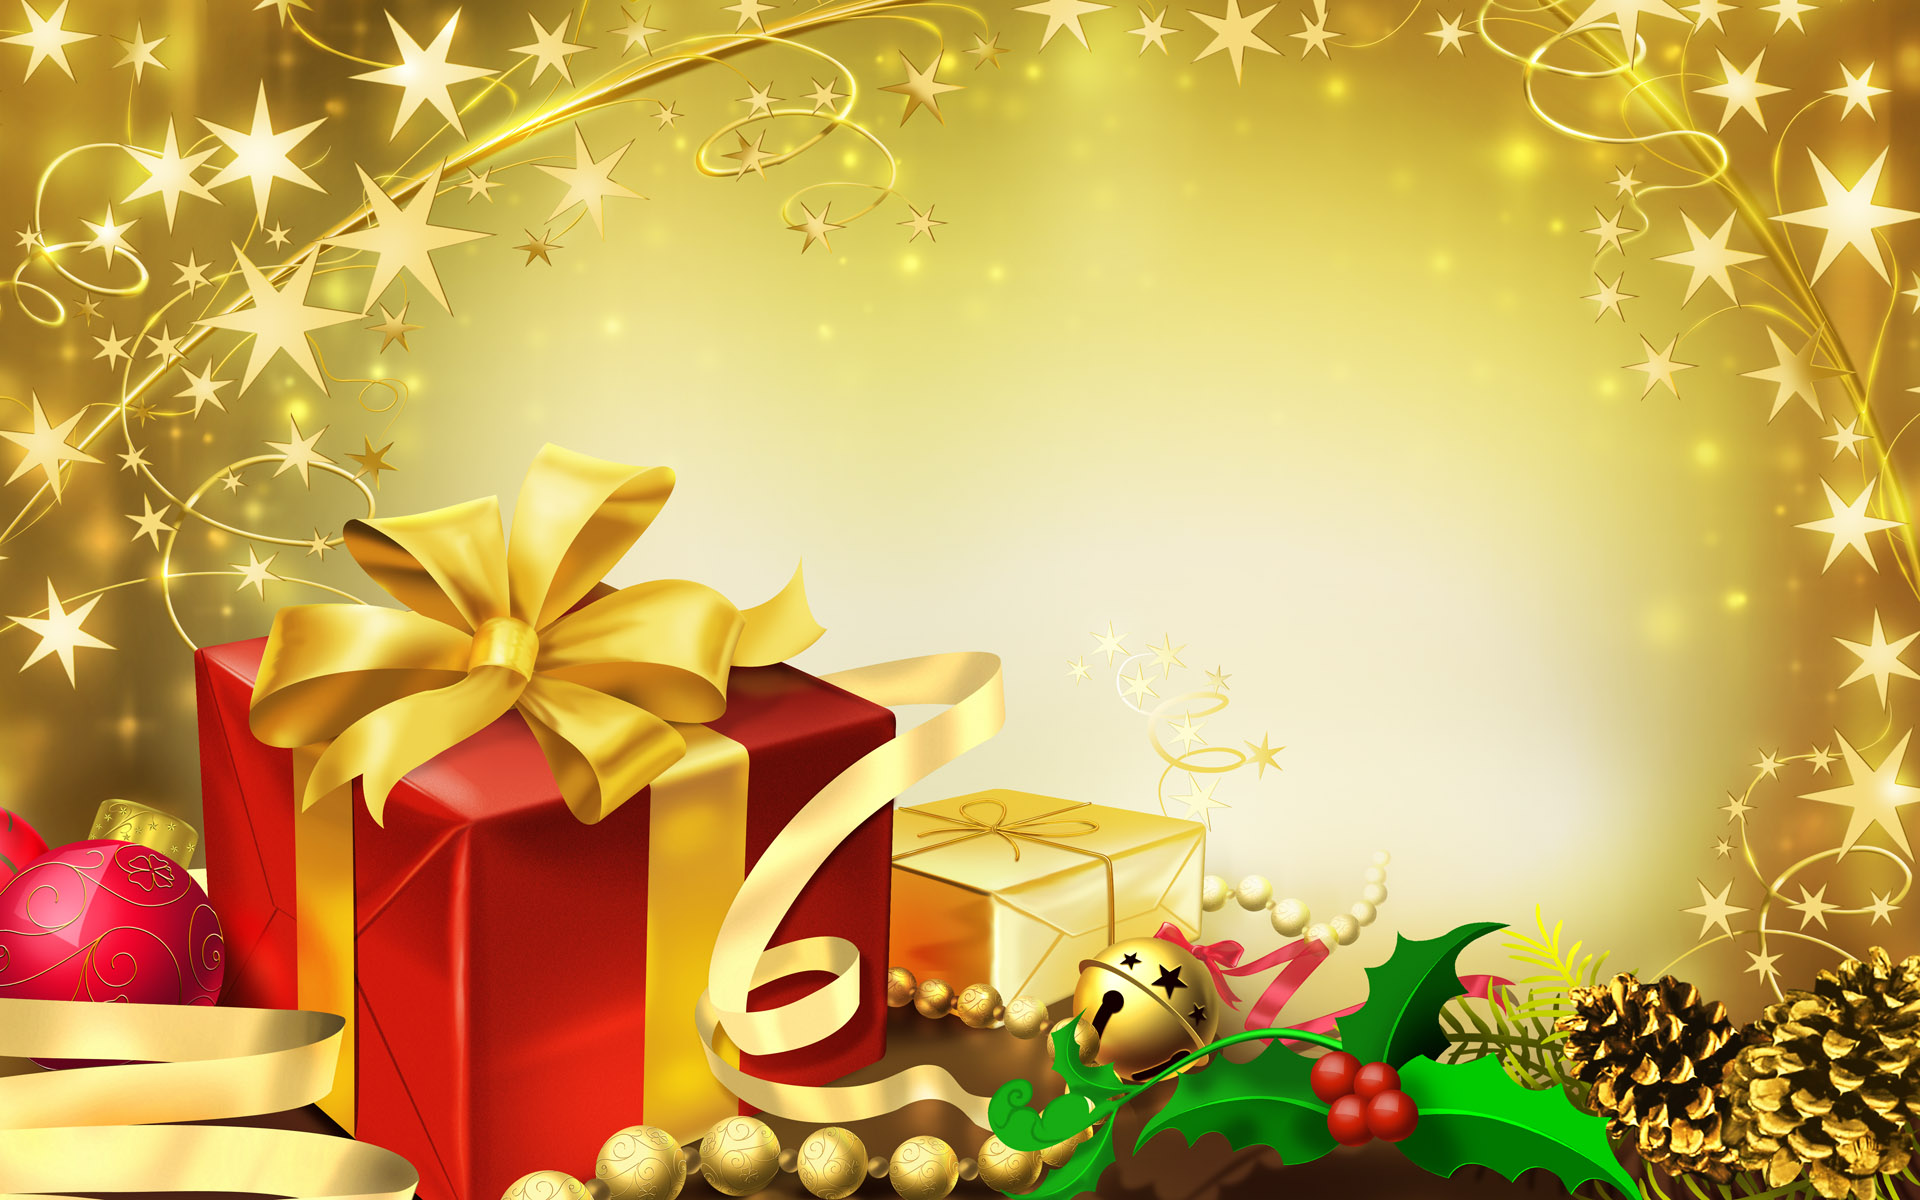 Holiday Gifts Wallpaper 1920x1200